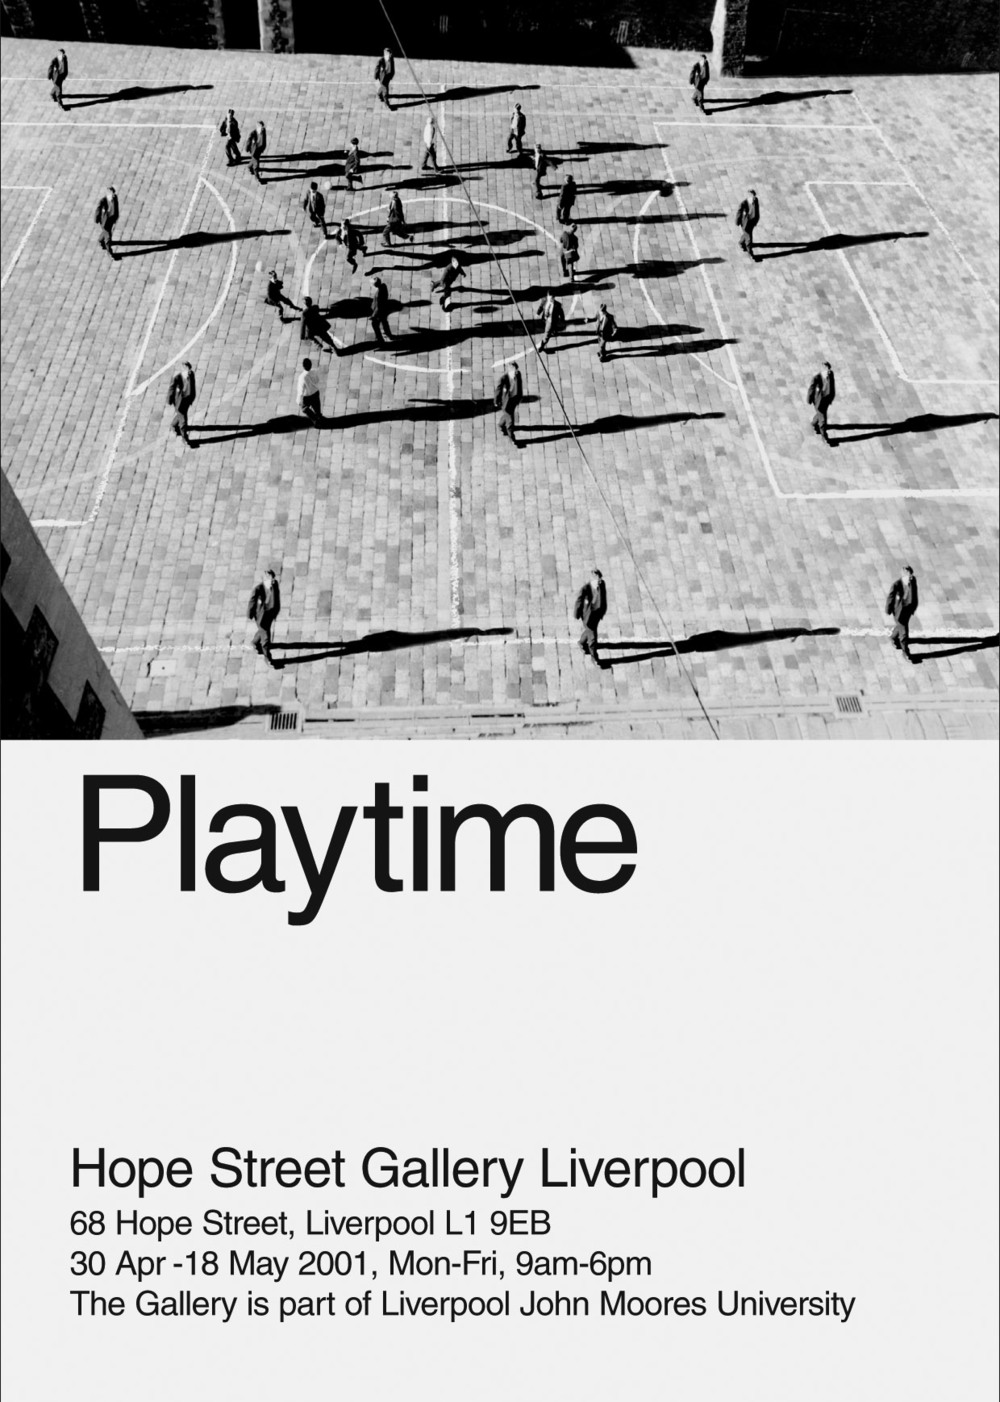 Playtime, 1998-2001  Exhibition of prints. A series of large printed images that equate the school playground with a petri dish; looking at the dynamics of 'culture' and how it replicates itself. Hope Street Gallery, Liverpool 2001. Funded by Arts Council of England. Supported by Liverpool John Moores University